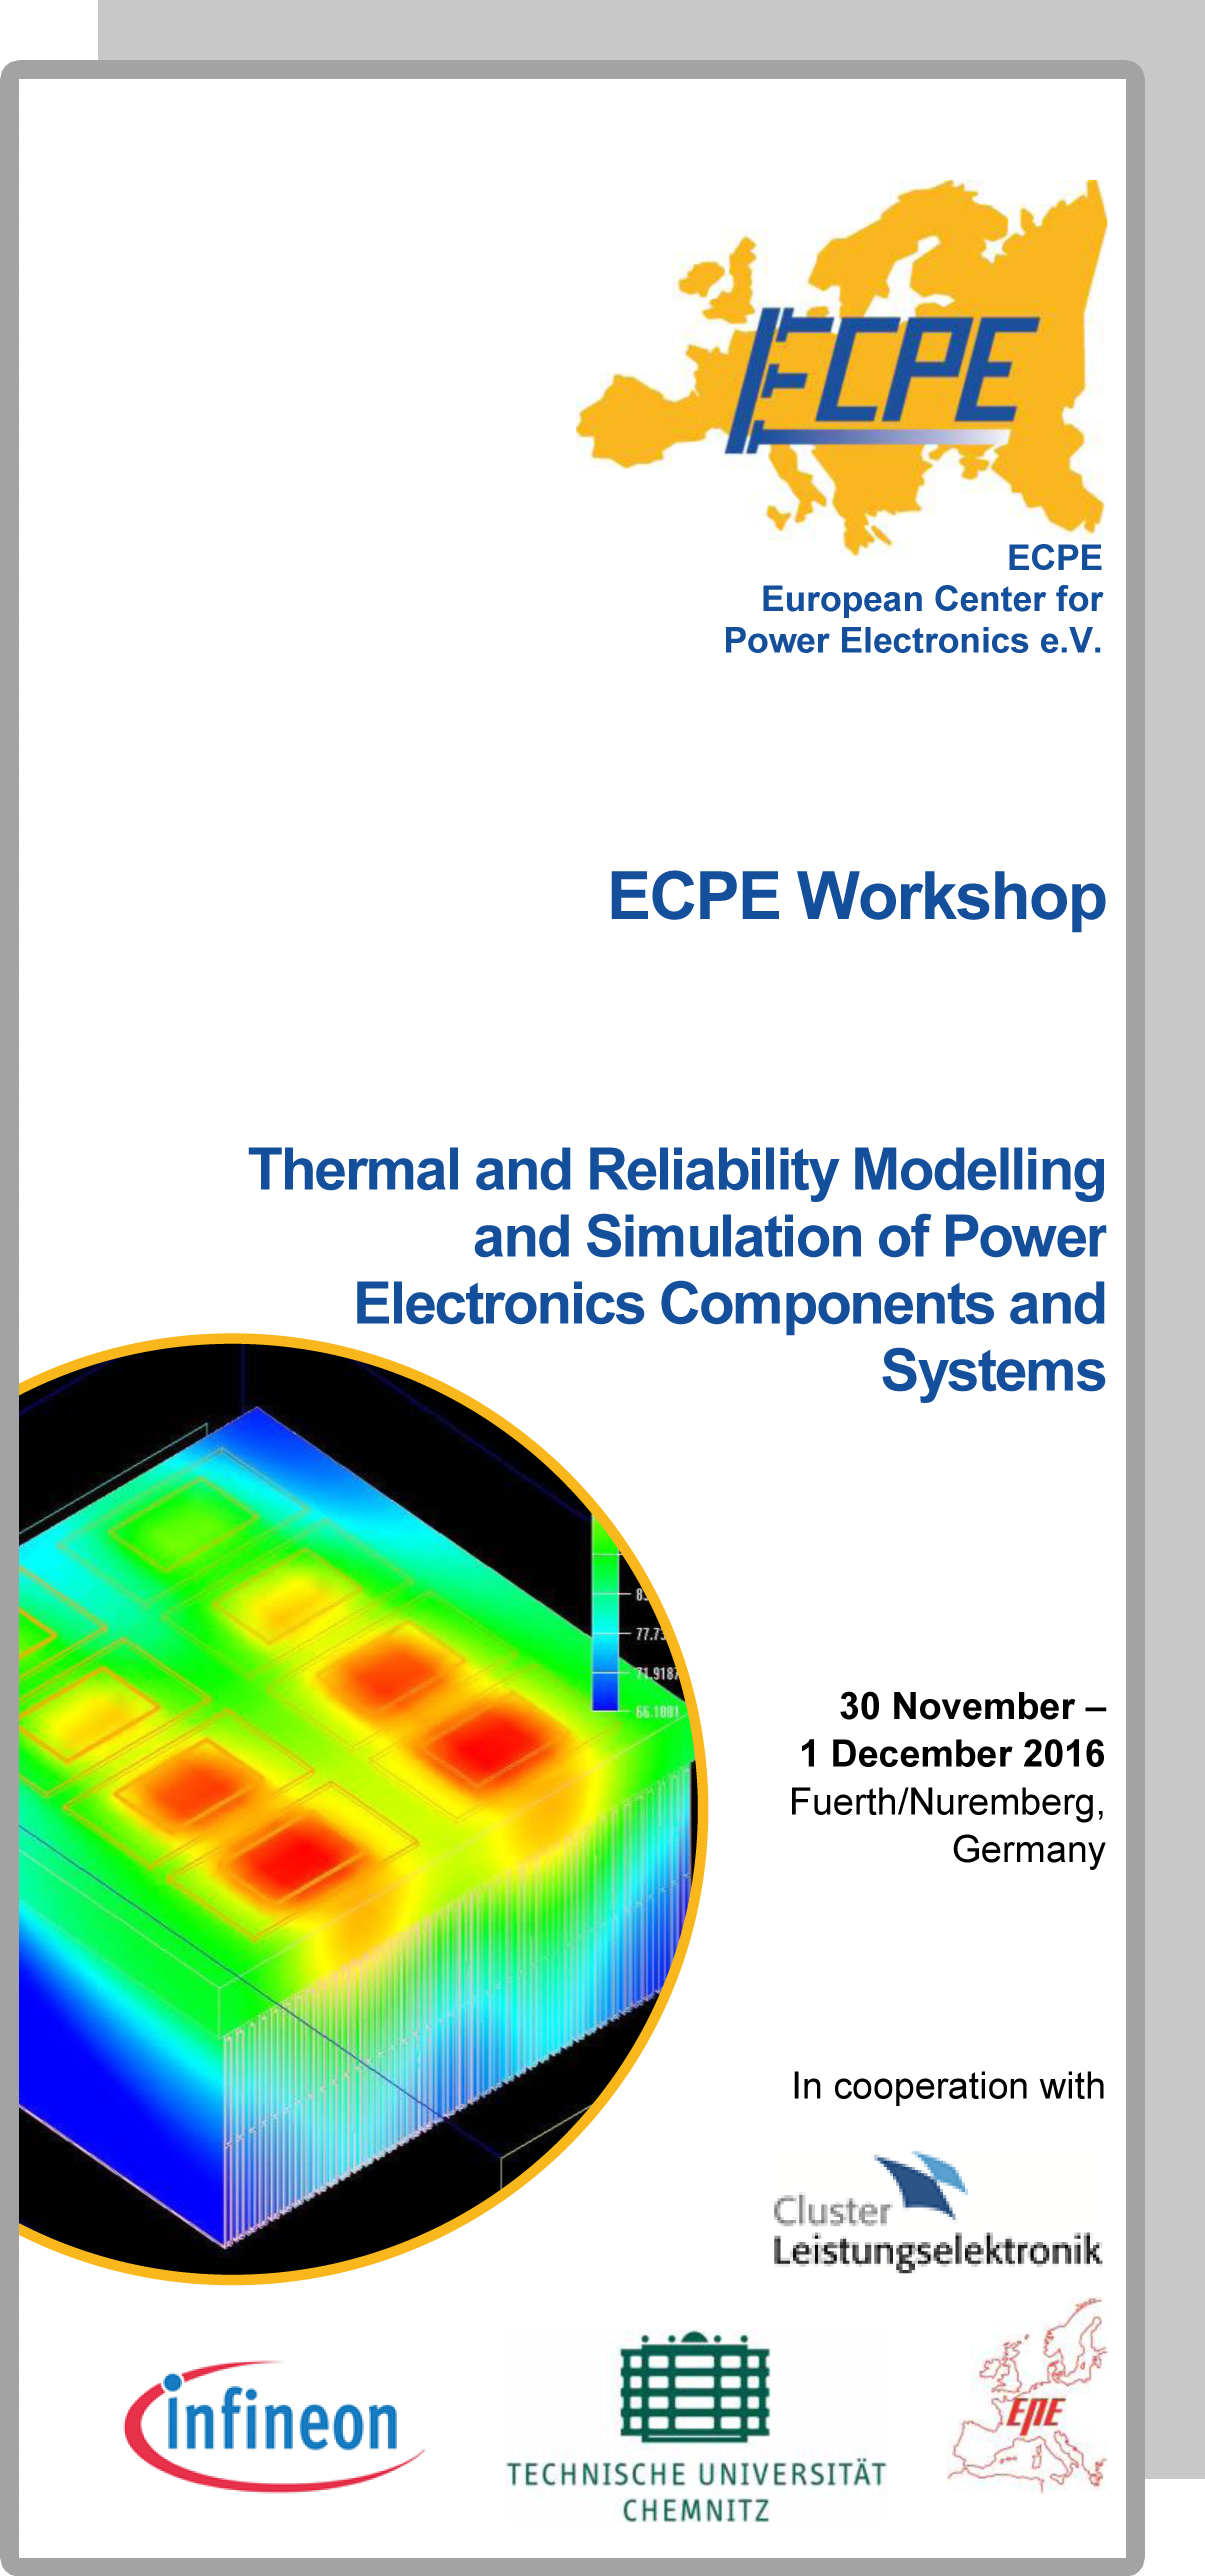 ECPE Workshop: Thermal and Reliability Modelling and Simulation of PE Components and Systems